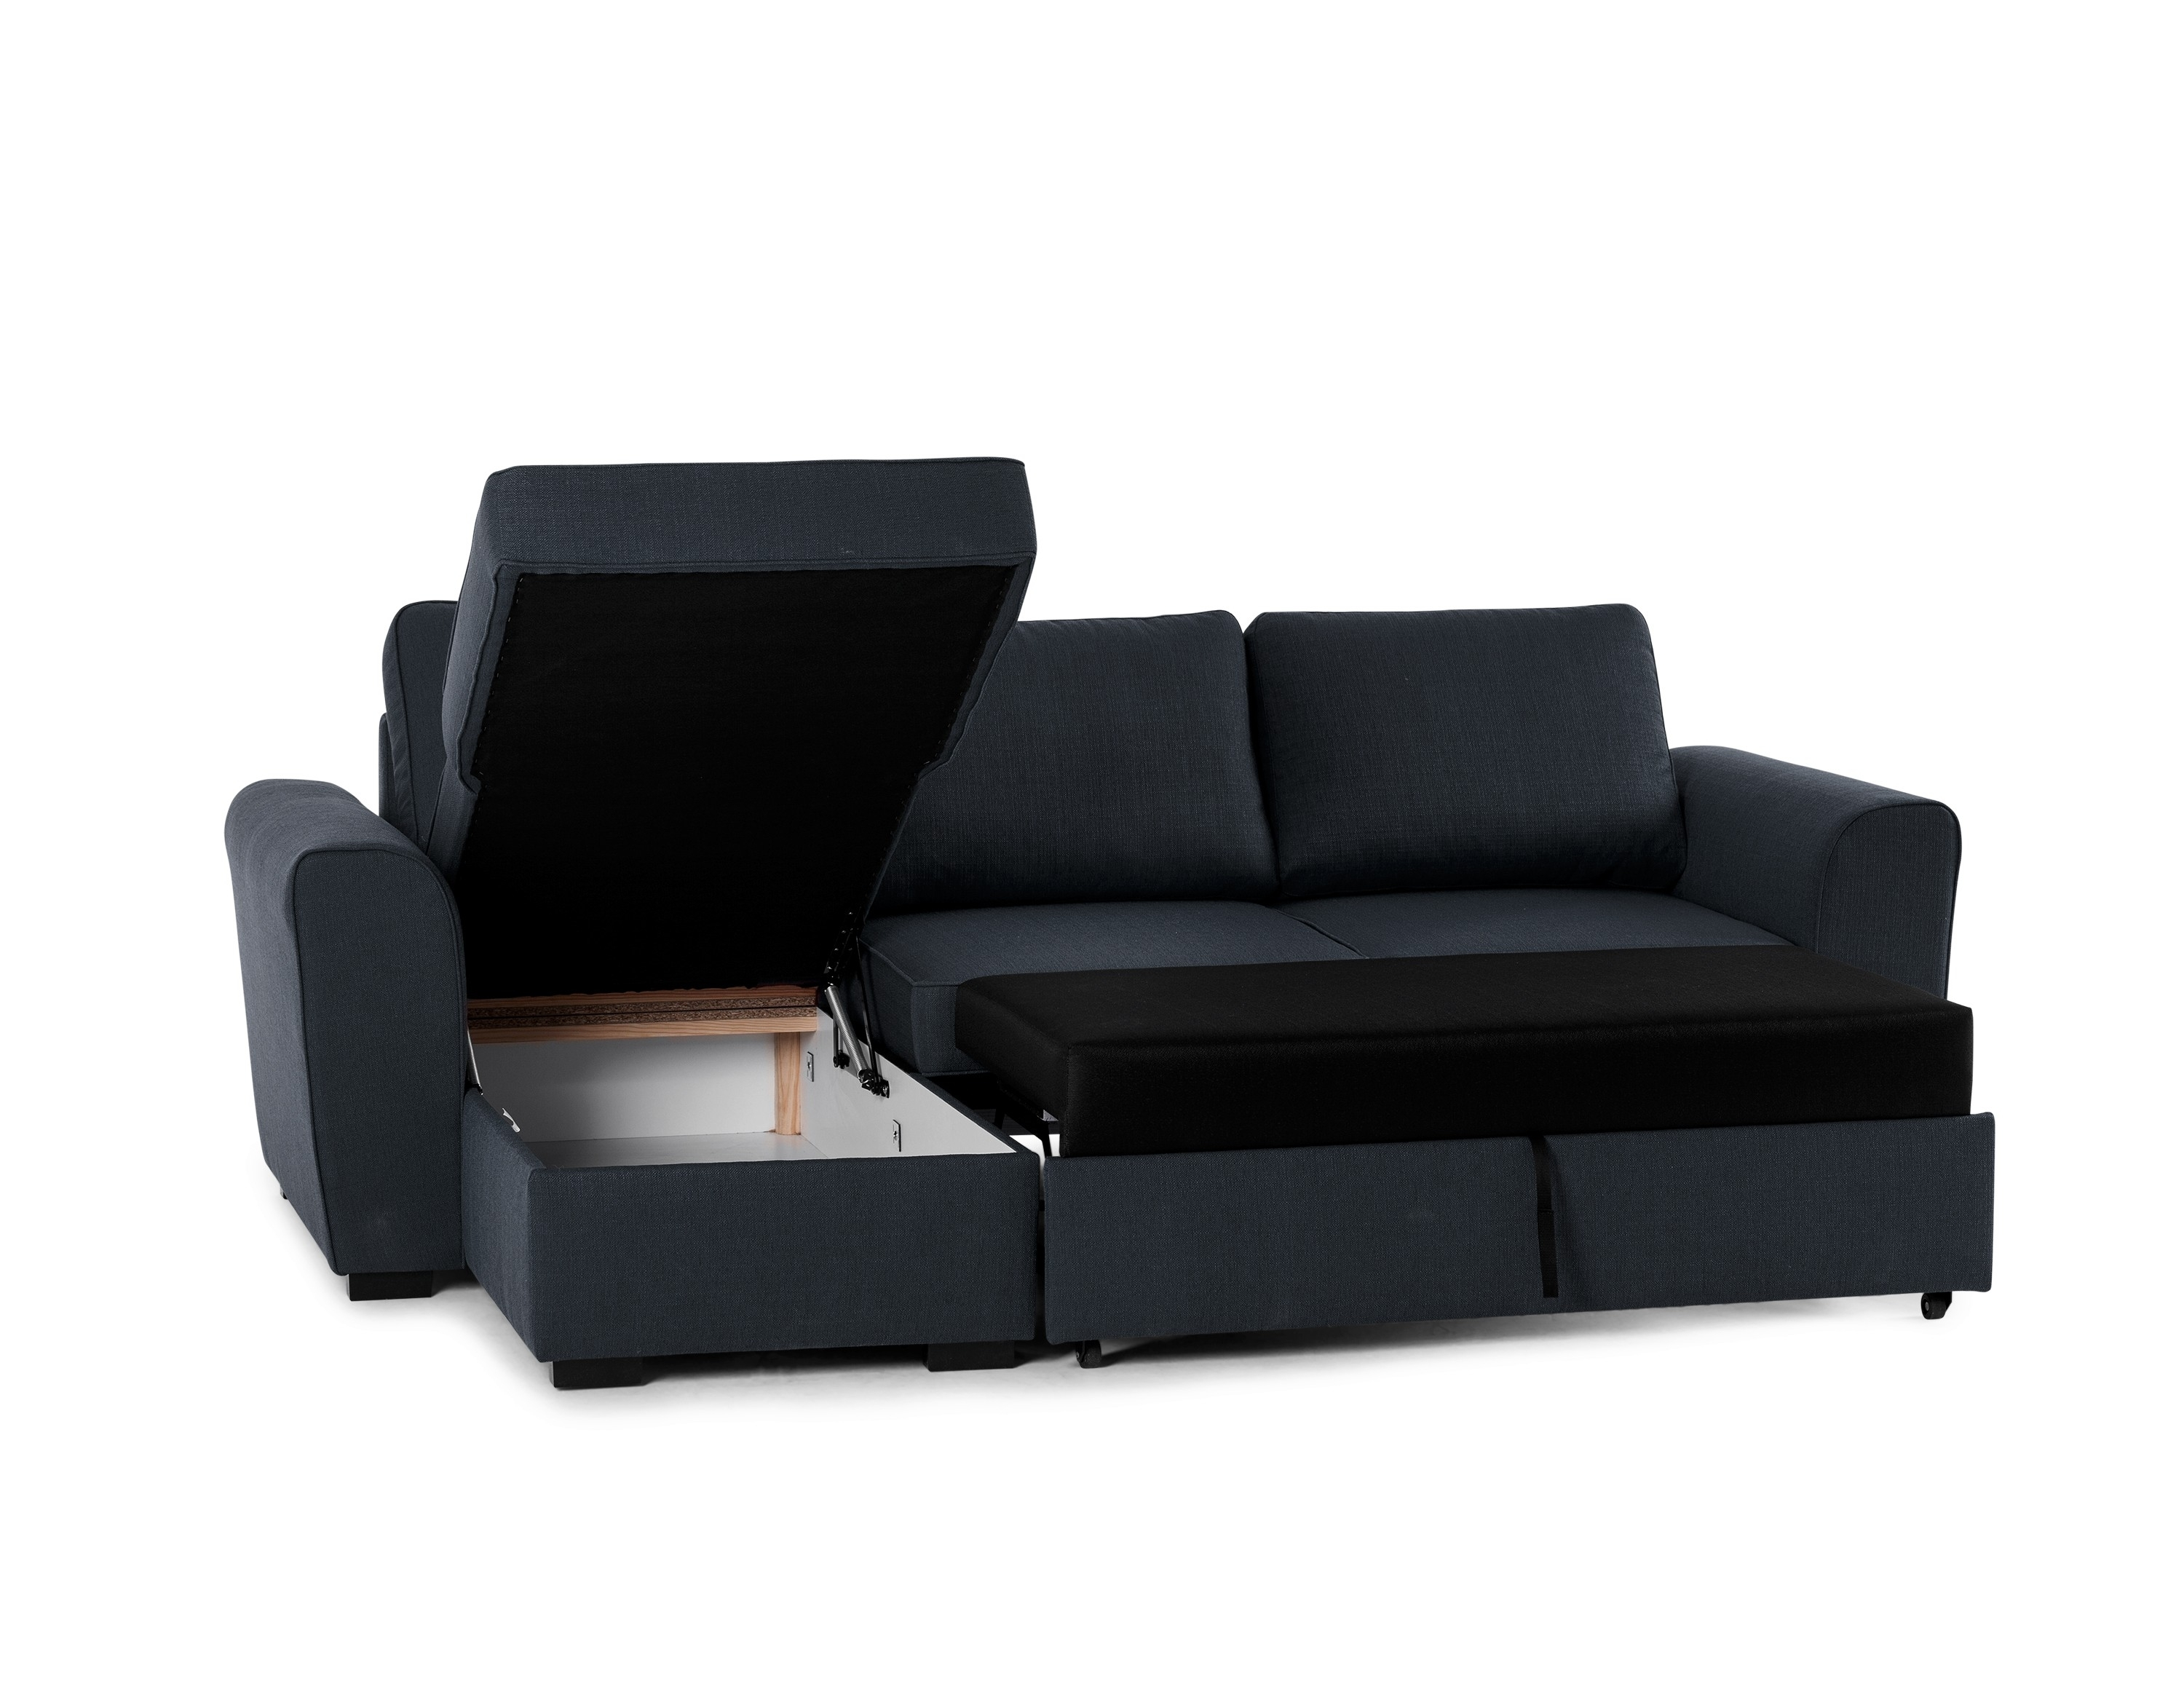 Sofa : Stunning Sectional Sofa Bed Apk 27801 2S 10X8 Cropafhs Pdp Pertaining To 10X8 Sectional Sofas (Image 7 of 10)